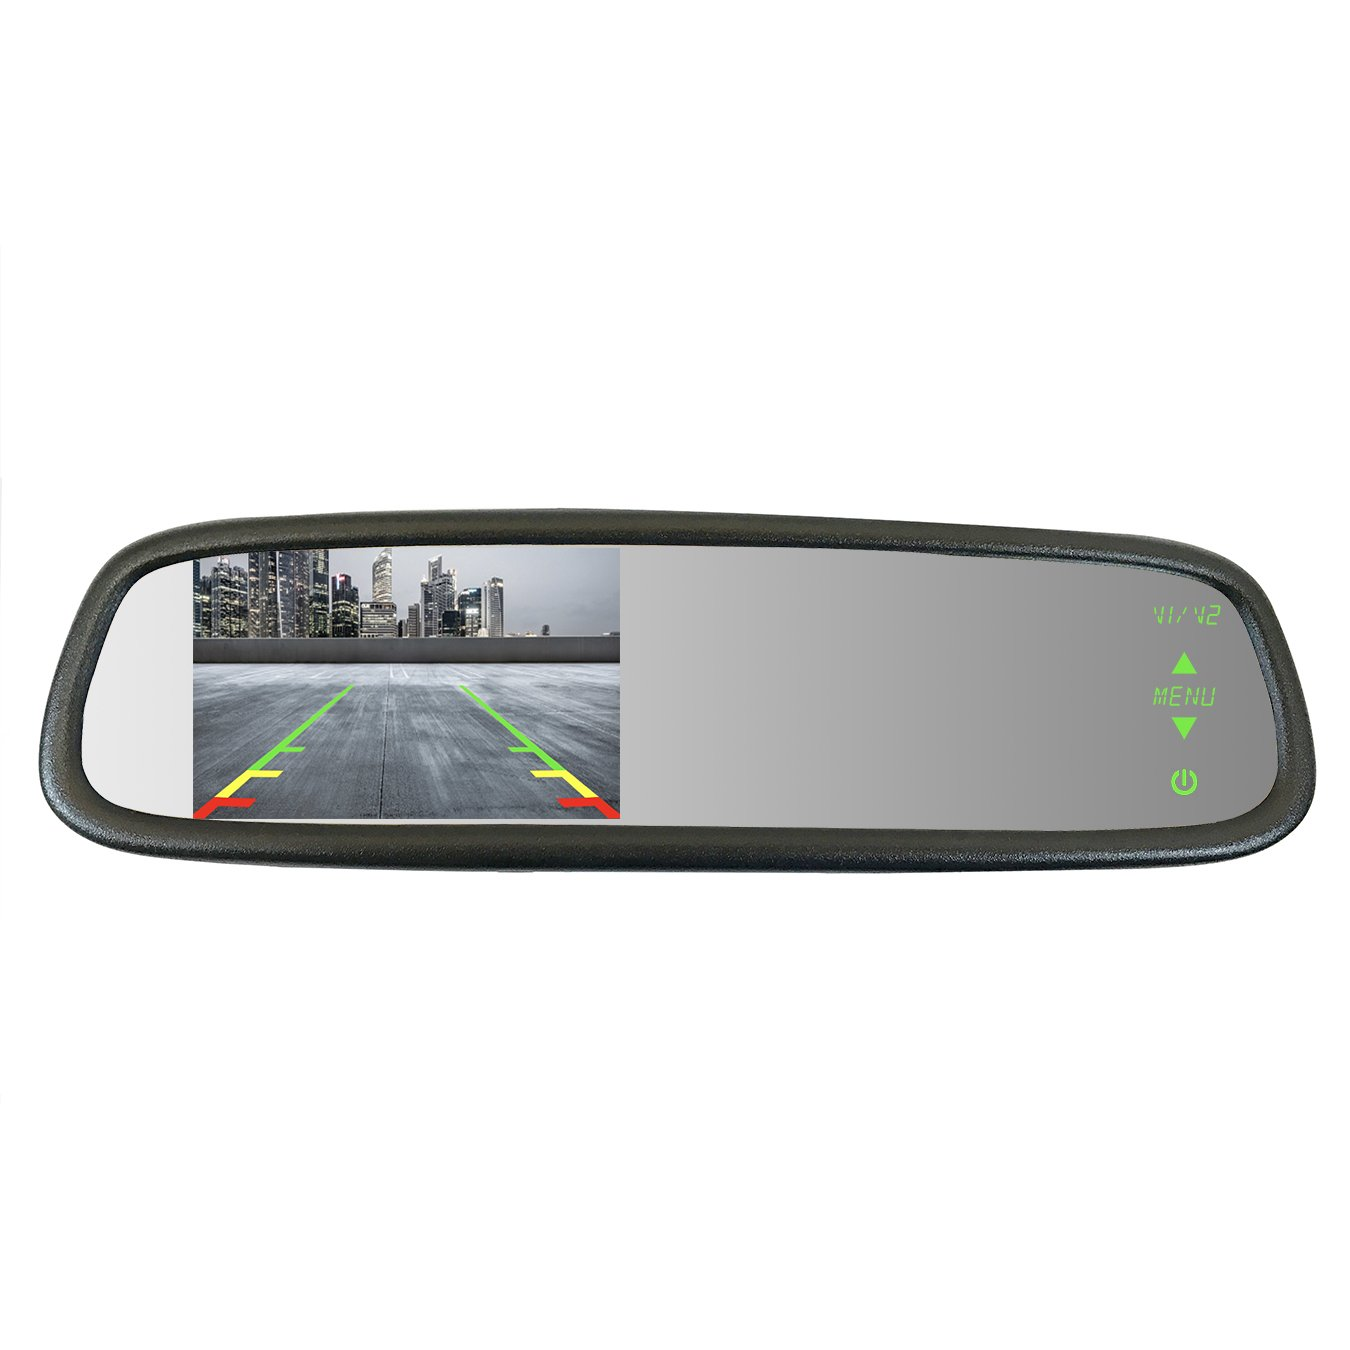 Master Tailgaters Sleek Rear View Mirror with Ultra Bright 4.3'' Auto Adjusting Brightness LCD - Universal Fit